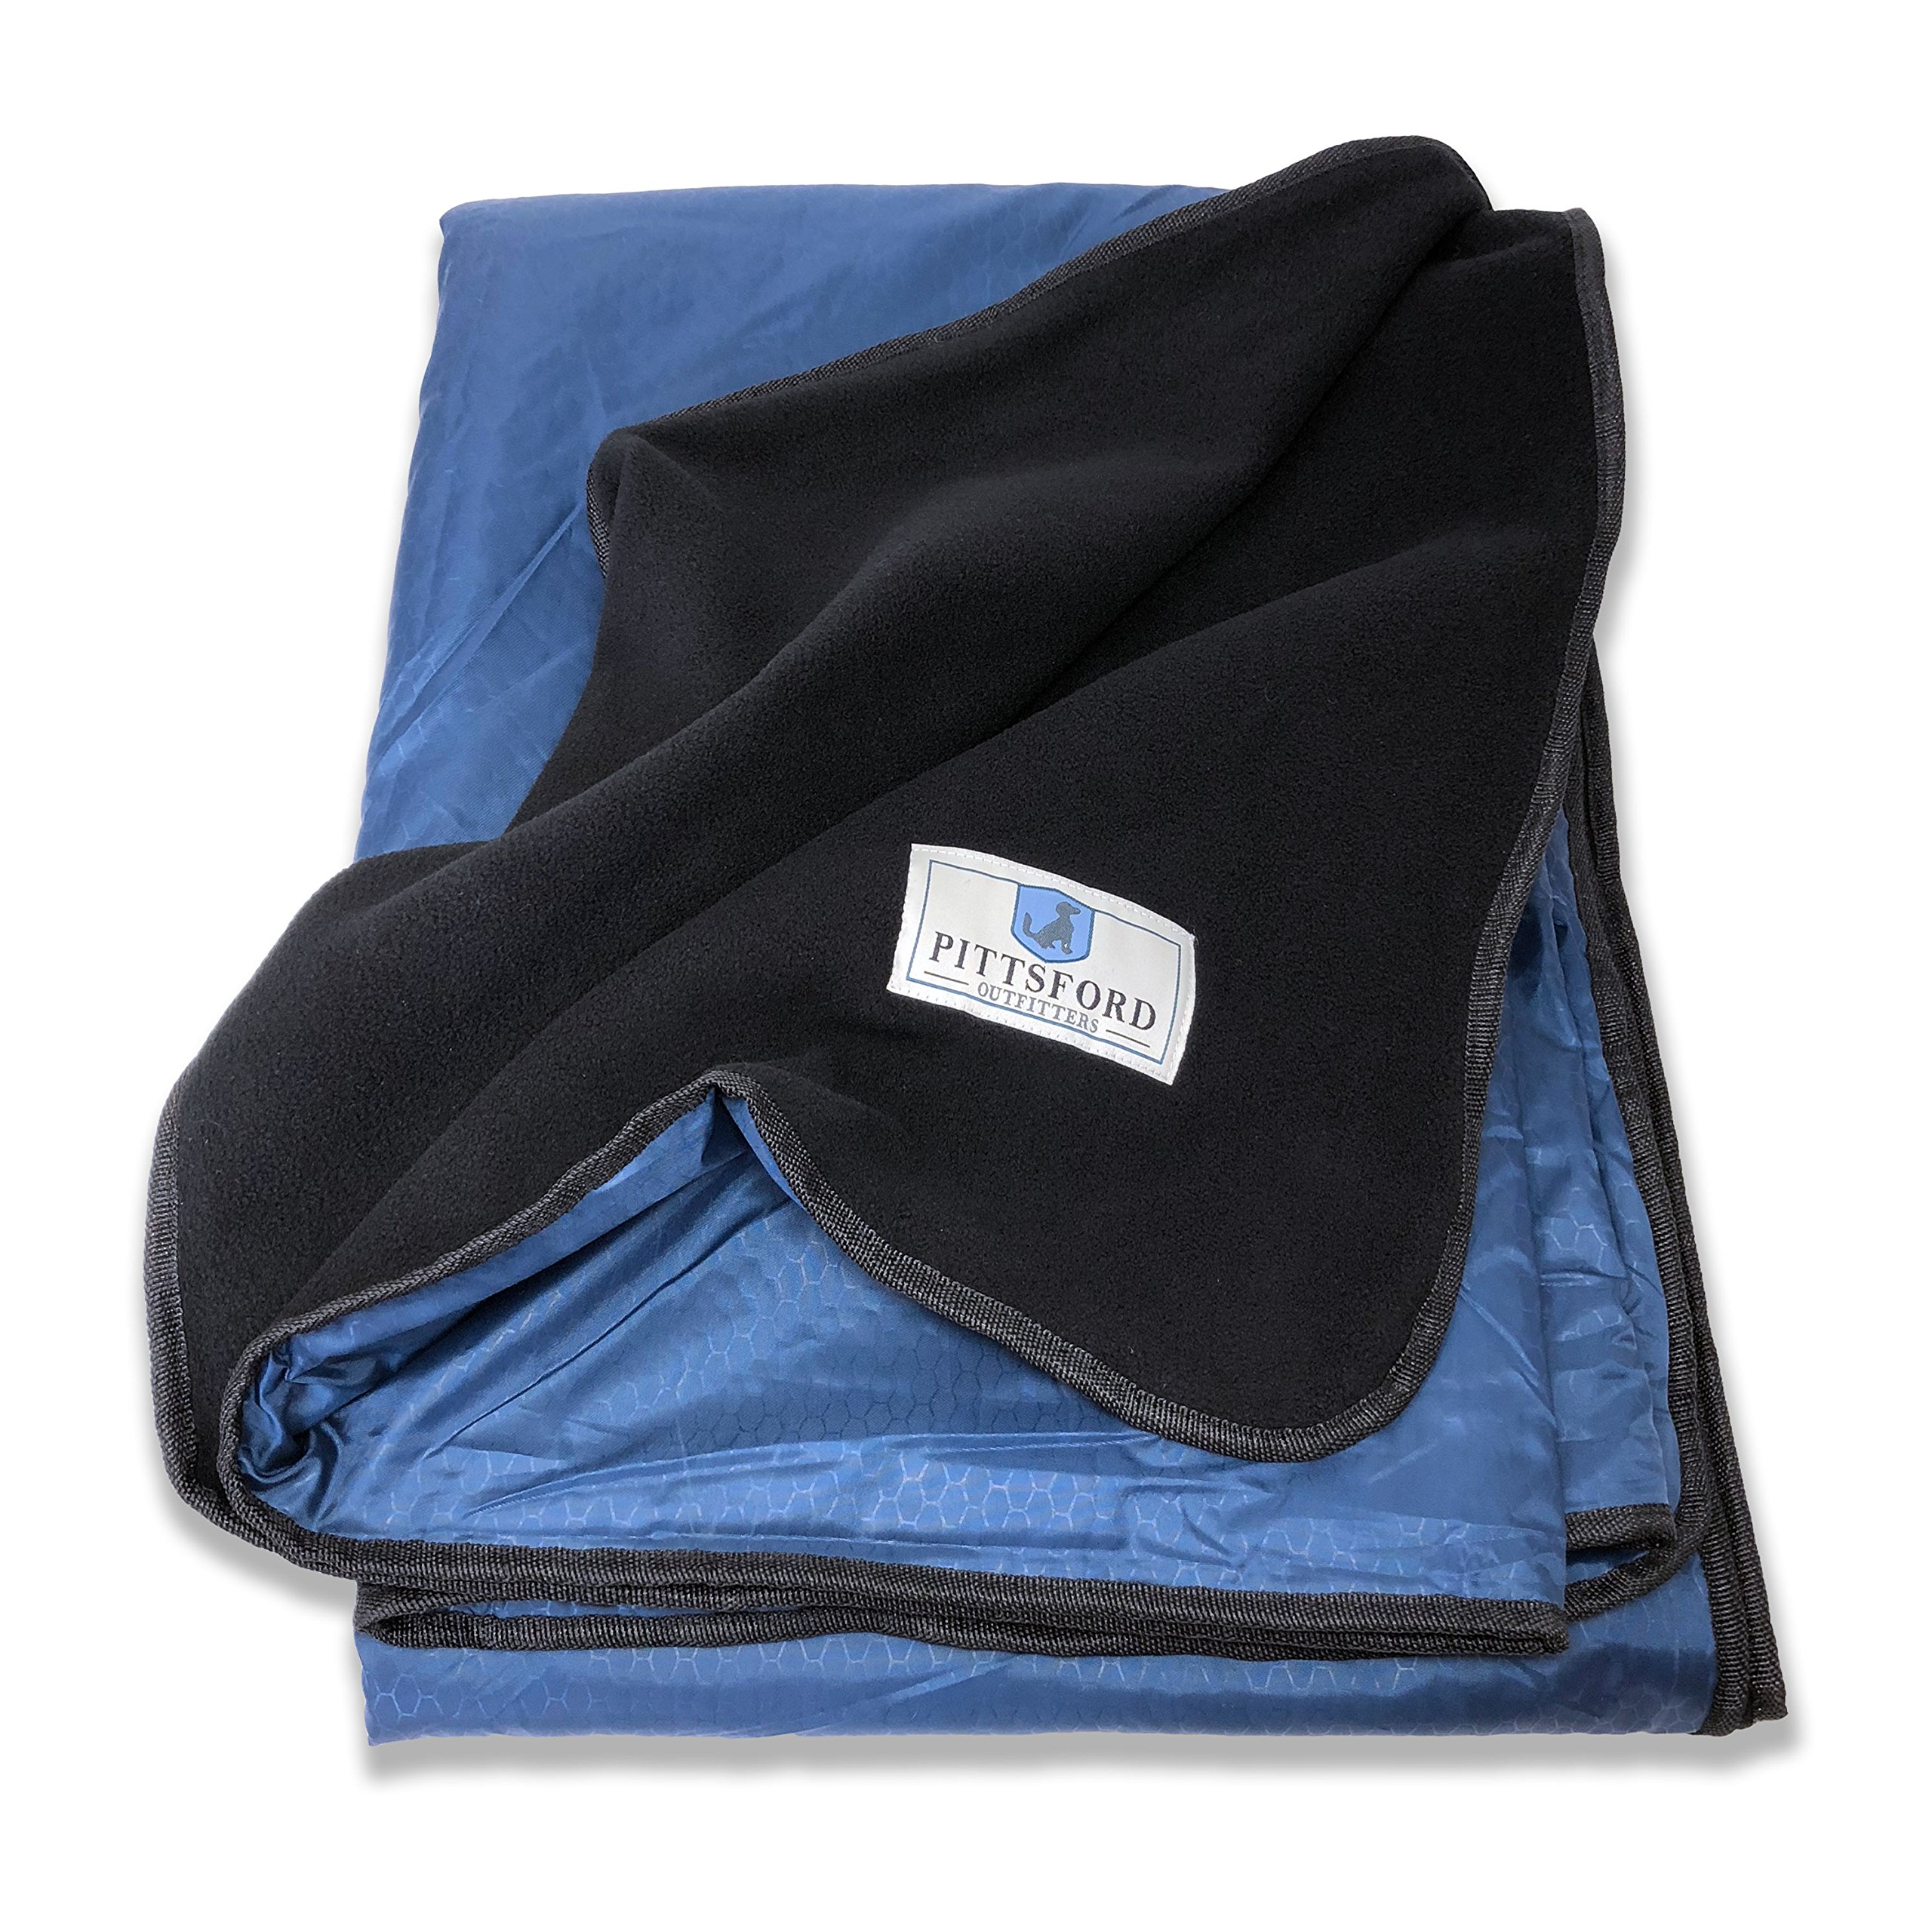 Pittsford Outfitters Spectator Outdoor Blanket   All Purpose Extra Large Rainproof & Windproof Stadium, Camp, Beach, or Picnic Blanket with Extra Soft, Plush & Warm Fleece Backing by Pittsford Outfitters